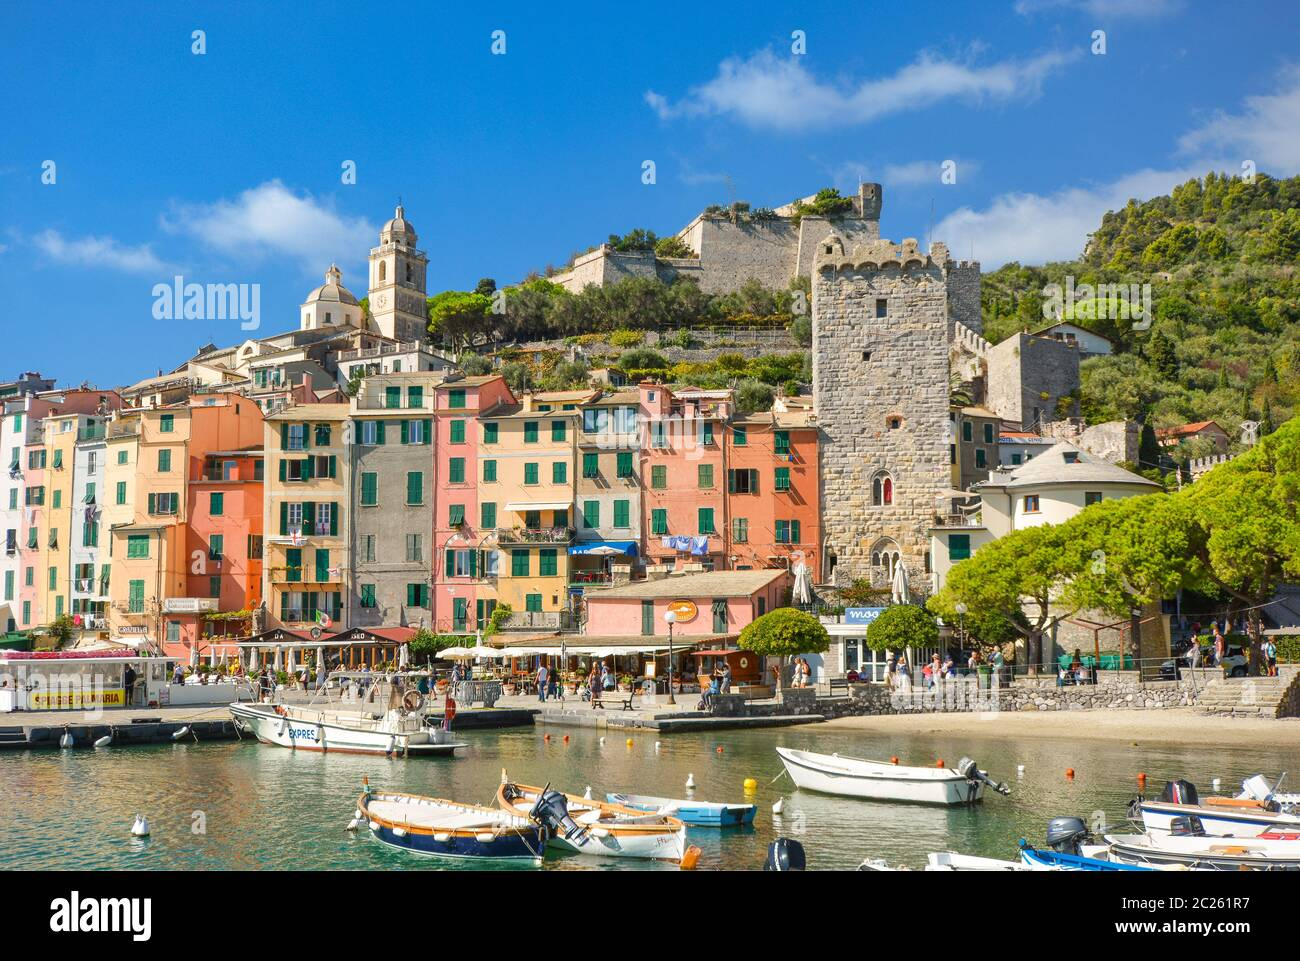 The colorful seaside village, harbor, bay and beach of Portovenere, Italy, an Unesco World Heritage site on the Ligurian coast Stock Photo